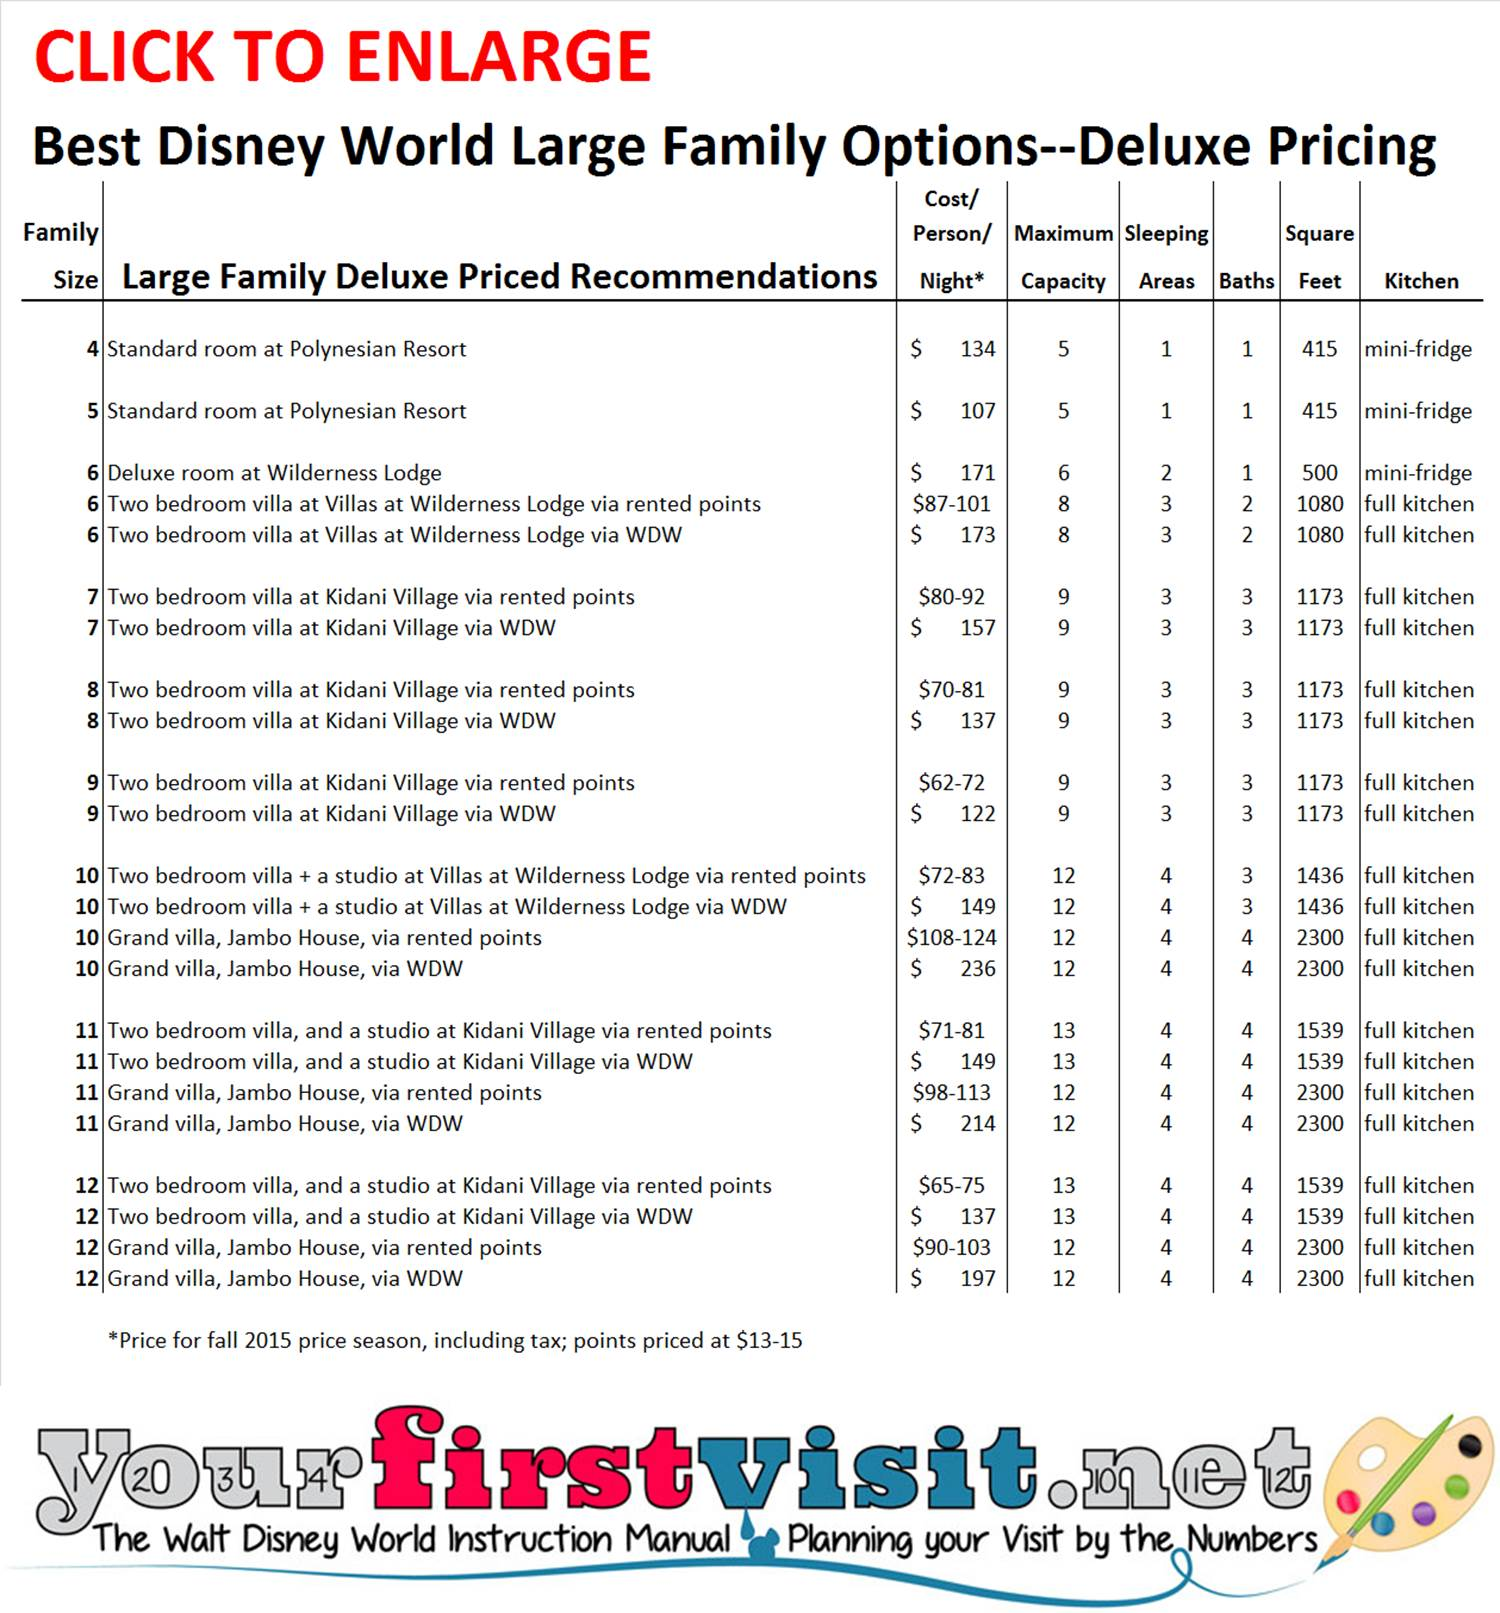 Disney World Deluxe Large Family Recommendations from yourfirstvisit.net